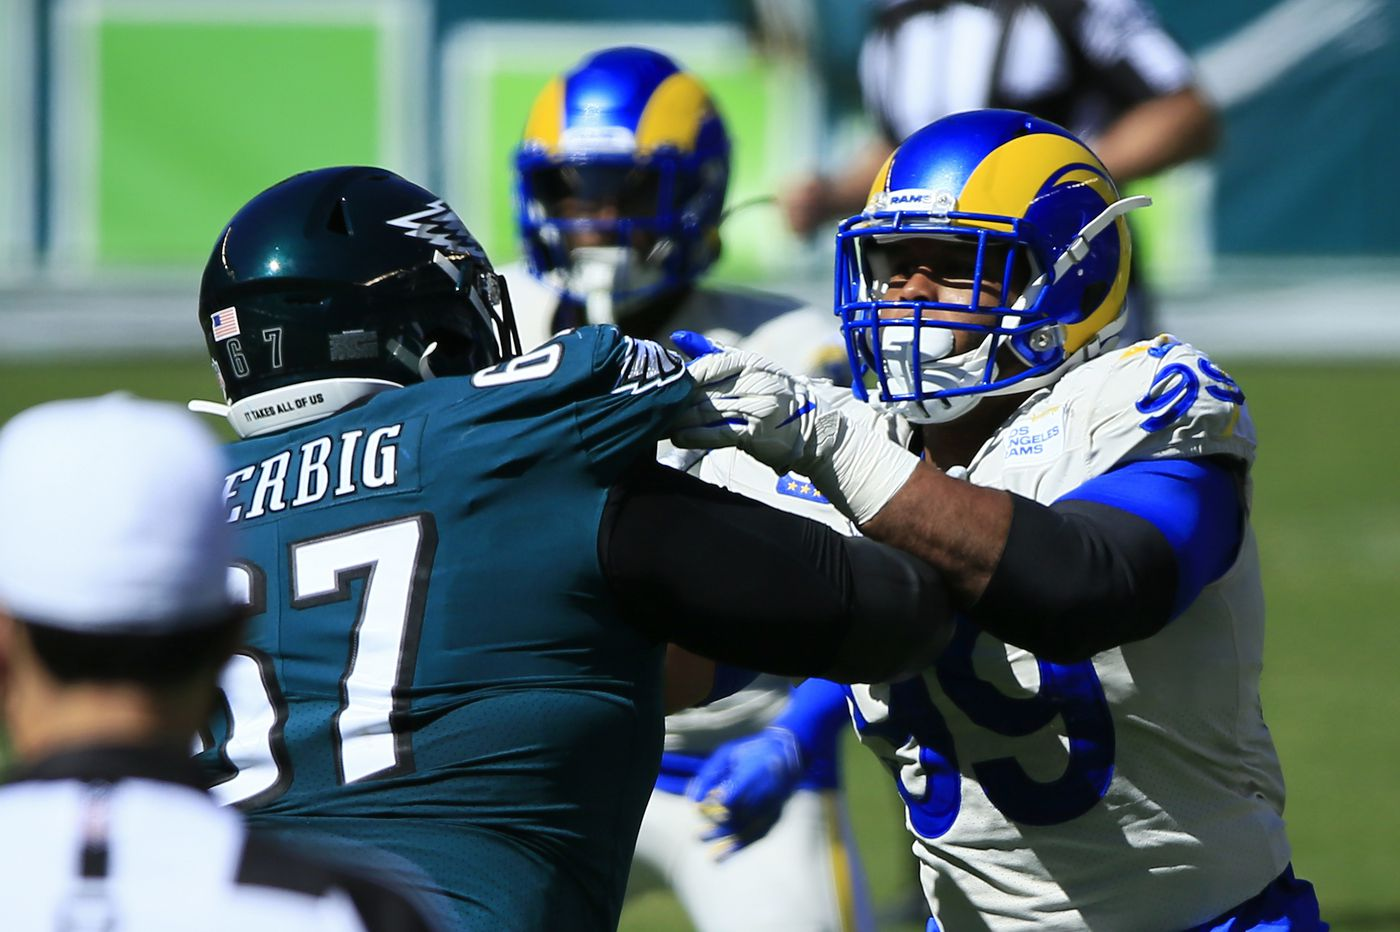 Eagles move Nate Herbig to left guard, and his view is don't make excuses, don't let the team down